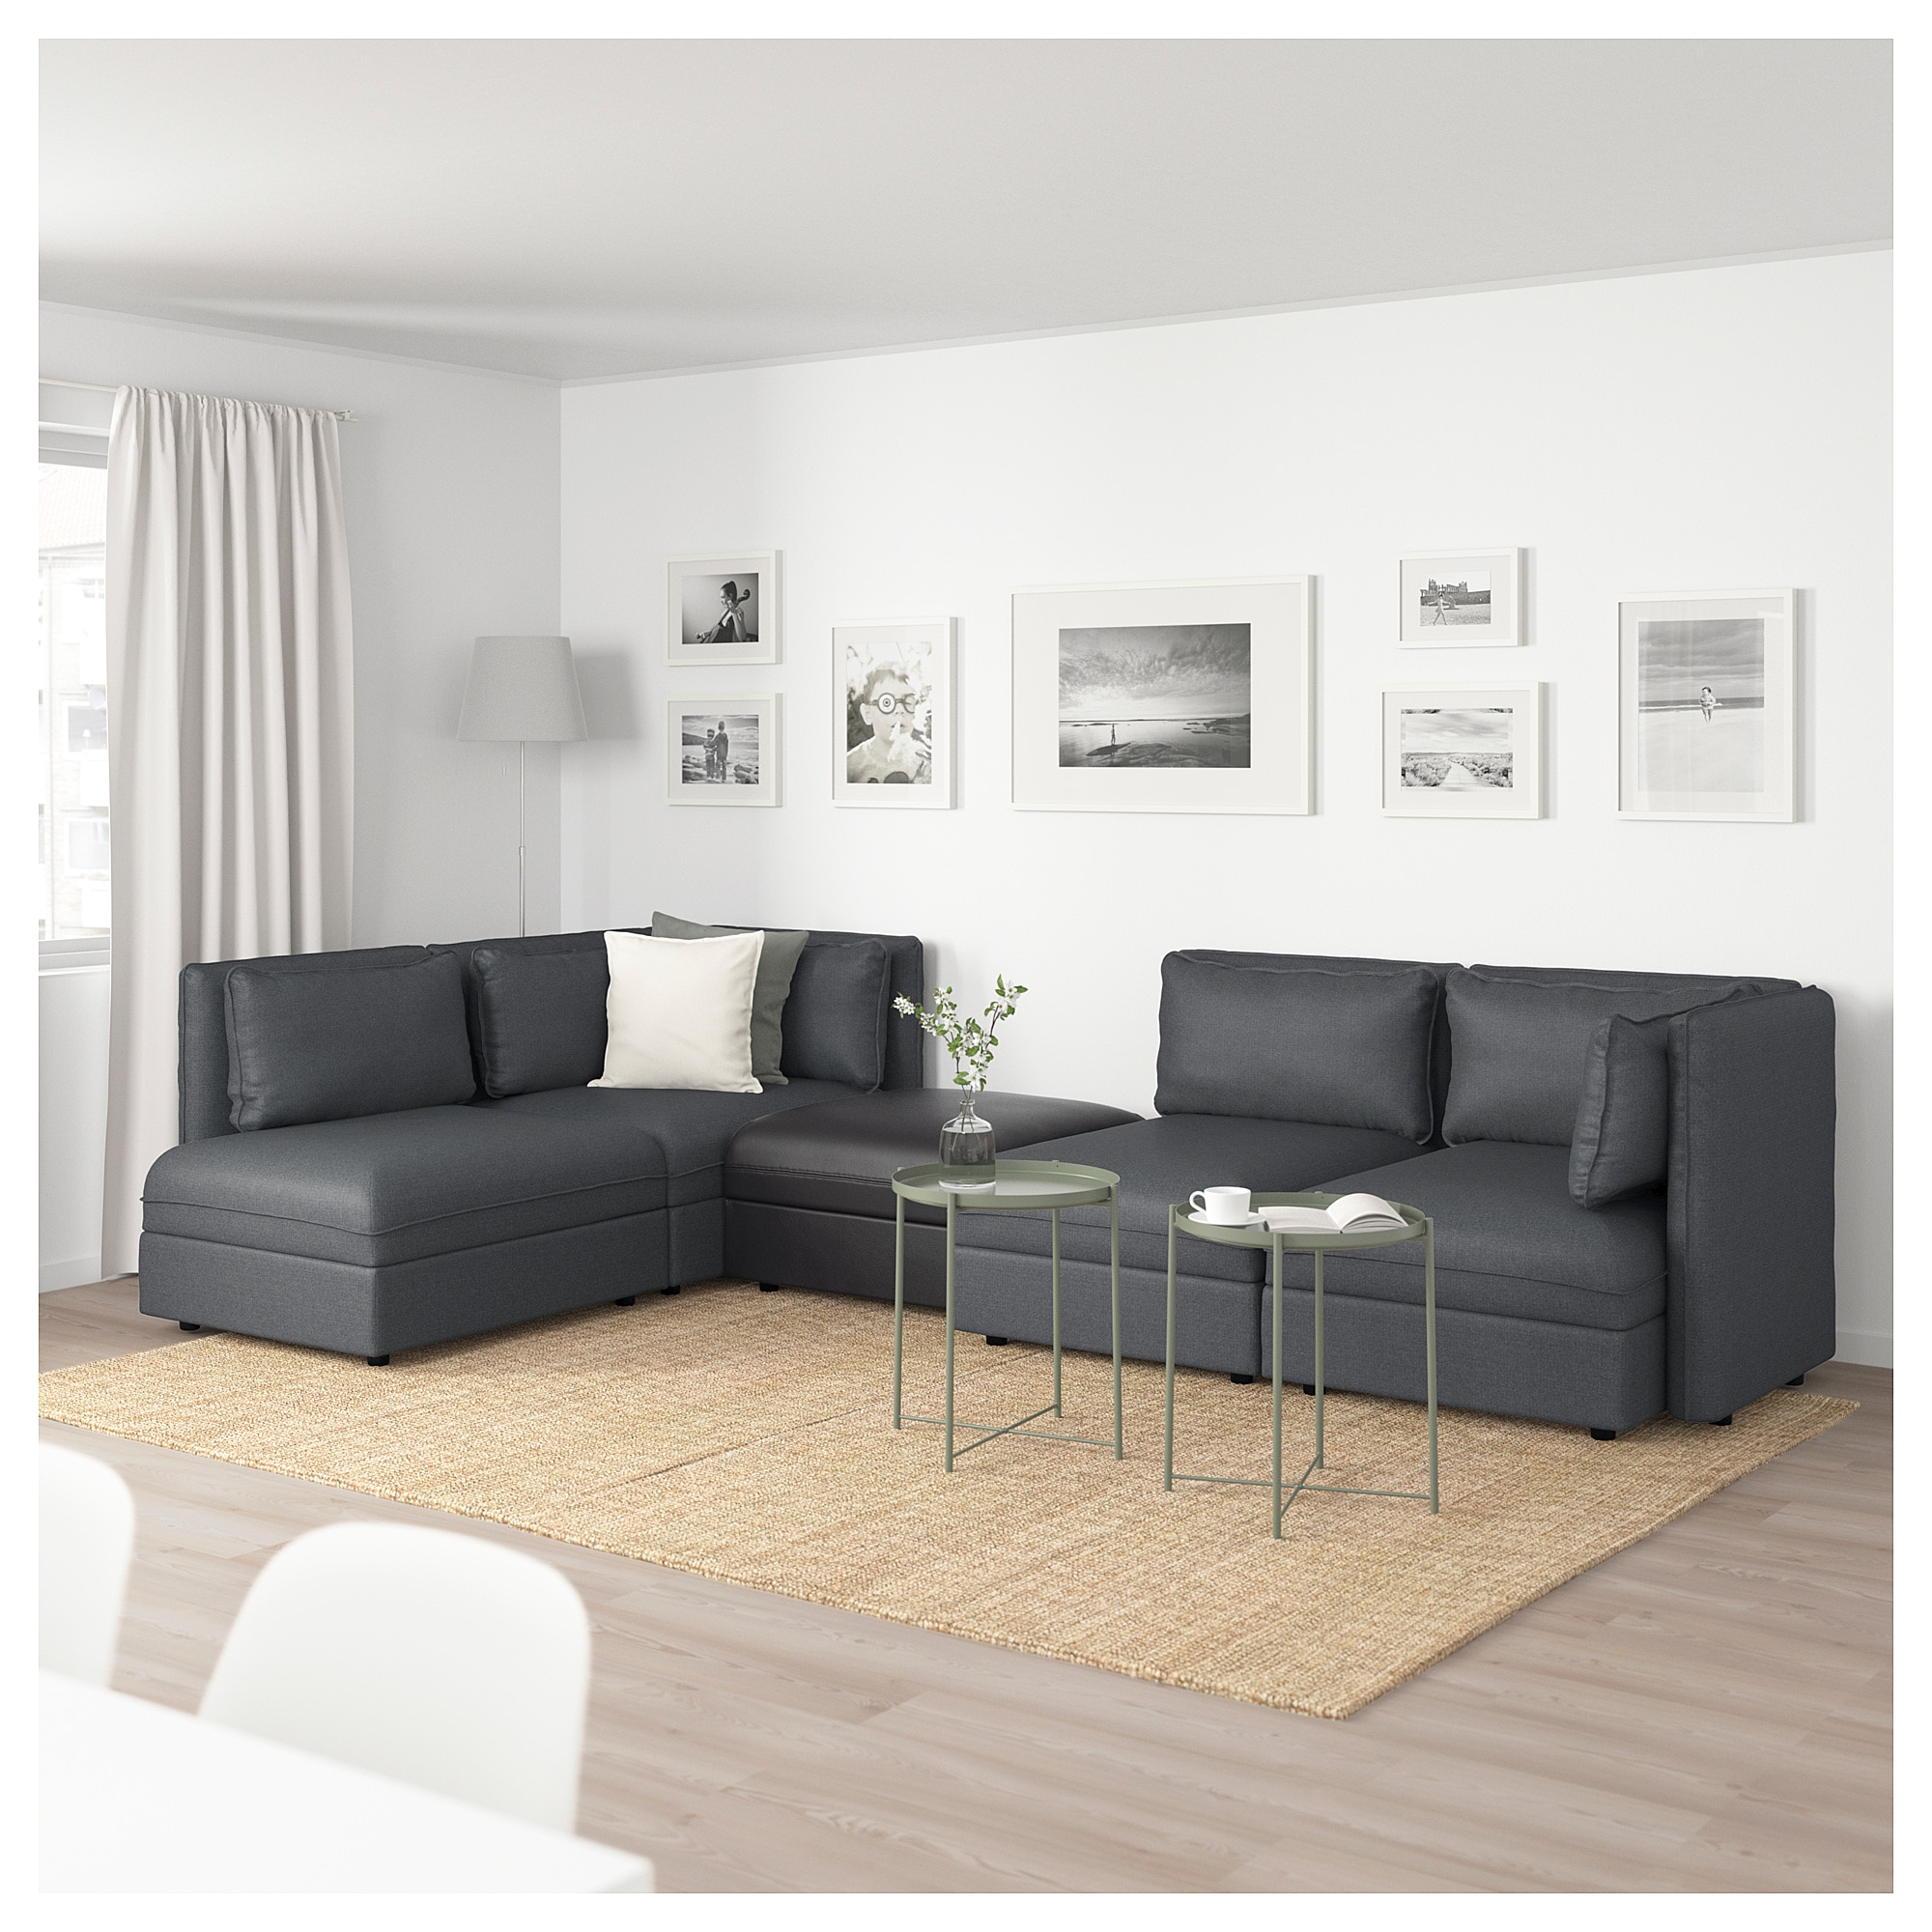 VALLENTUNA Modular corner sofa, 4seat with storage